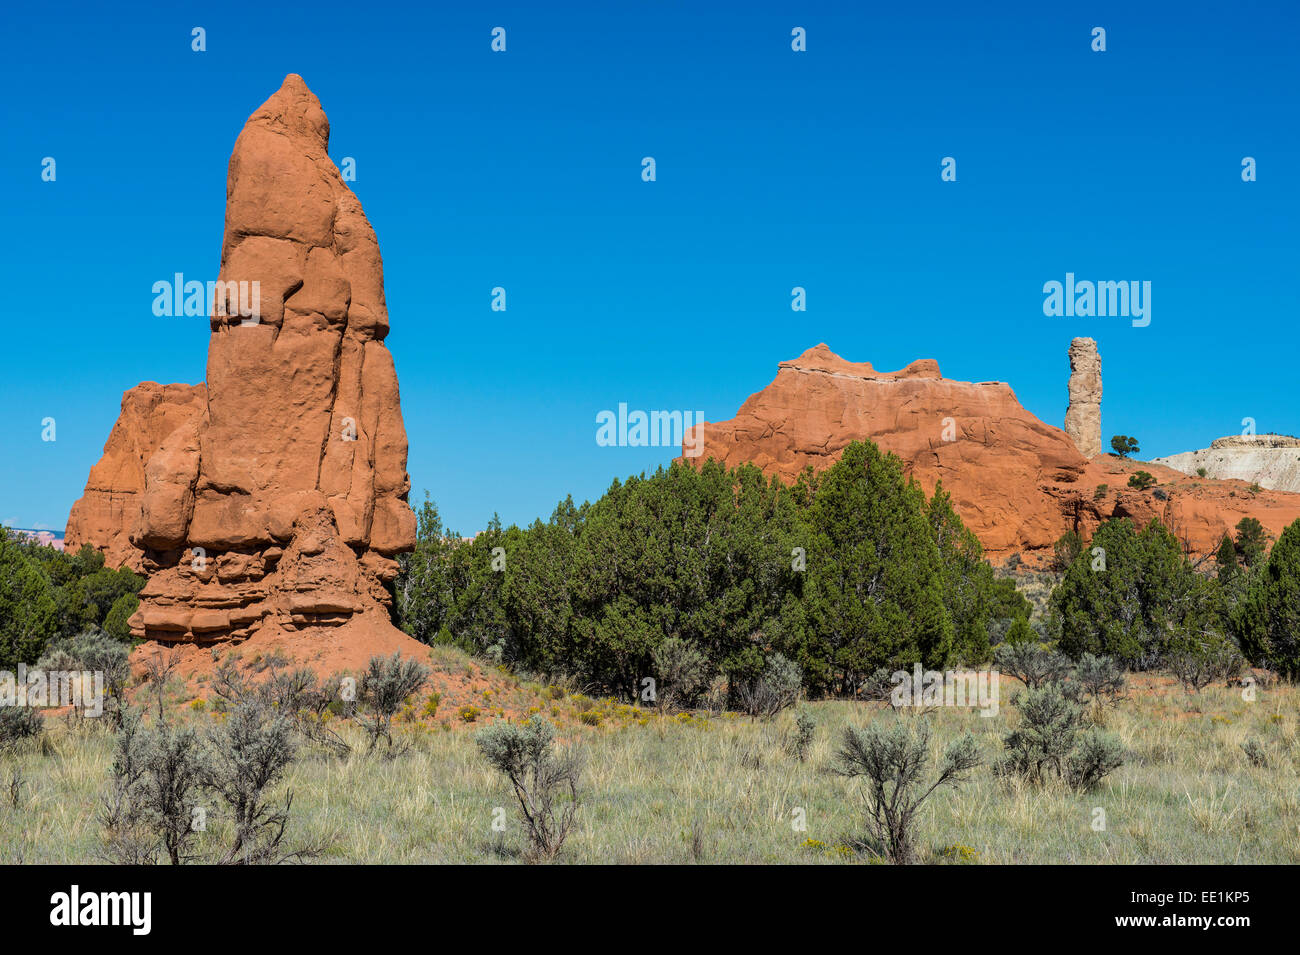 Sandstone chimneys in the Kodachrome Basin State Park, Utah, United States of America, North America - Stock Image